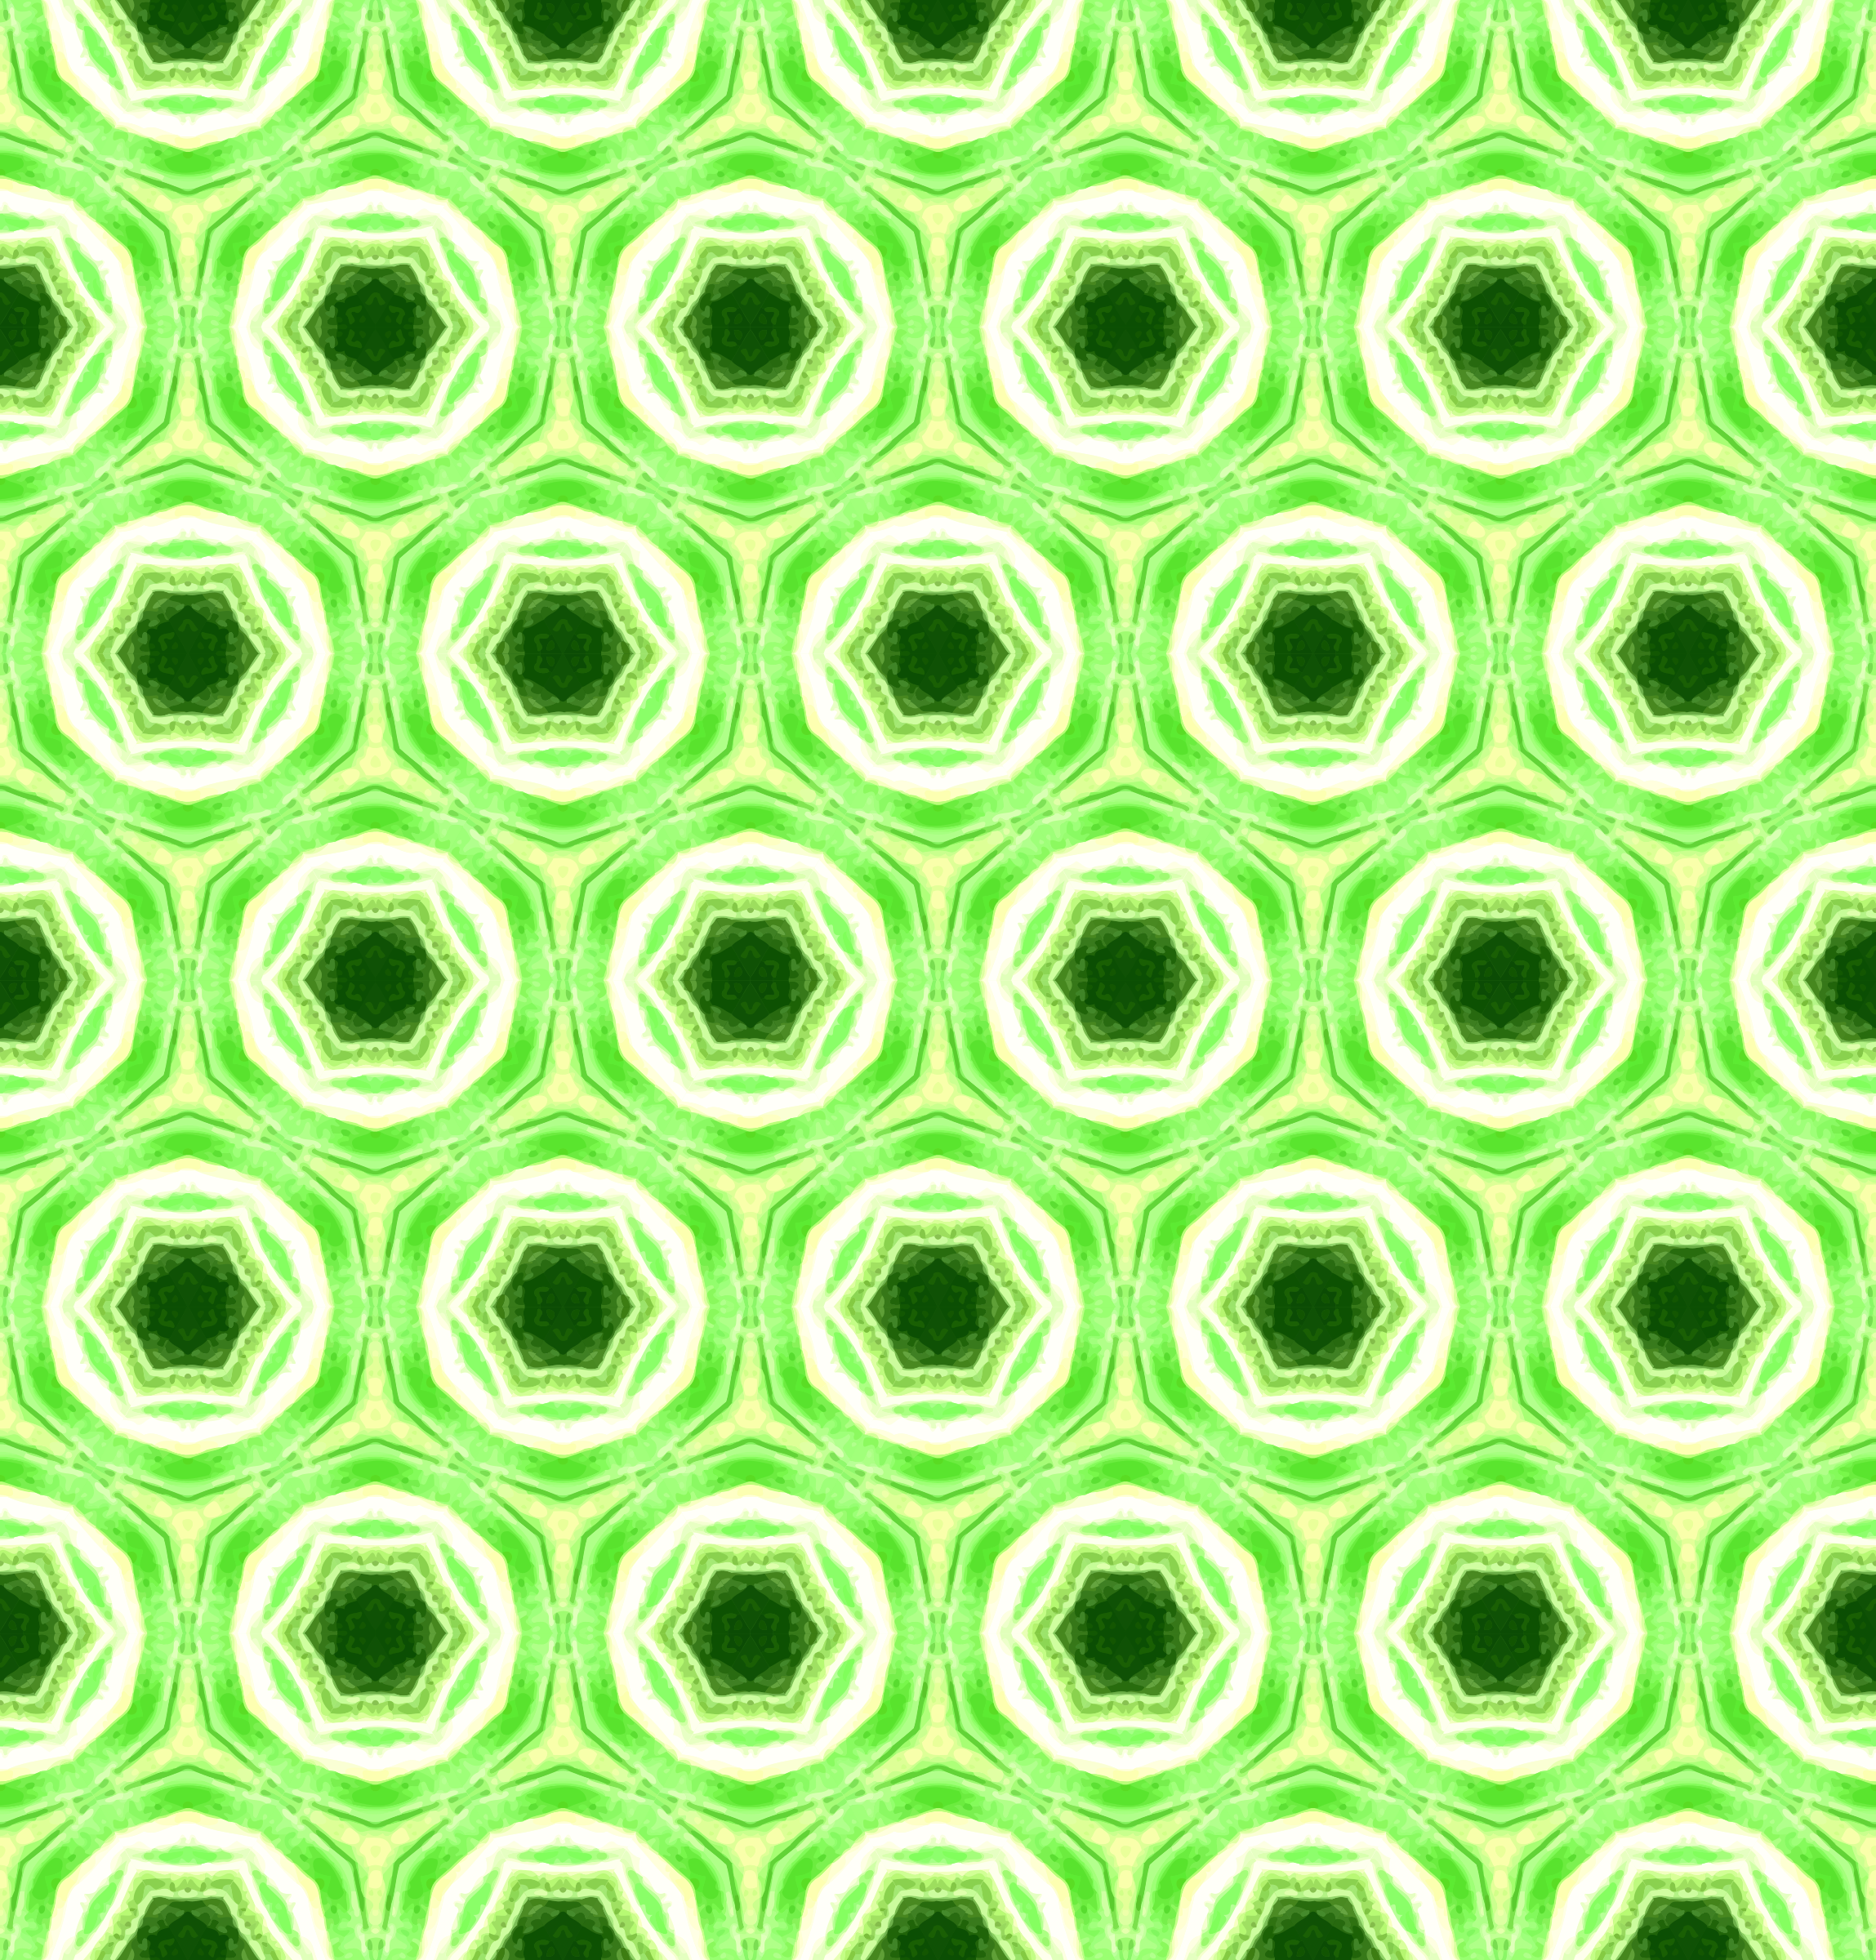 Background pattern 160 (colour 4) by Firkin